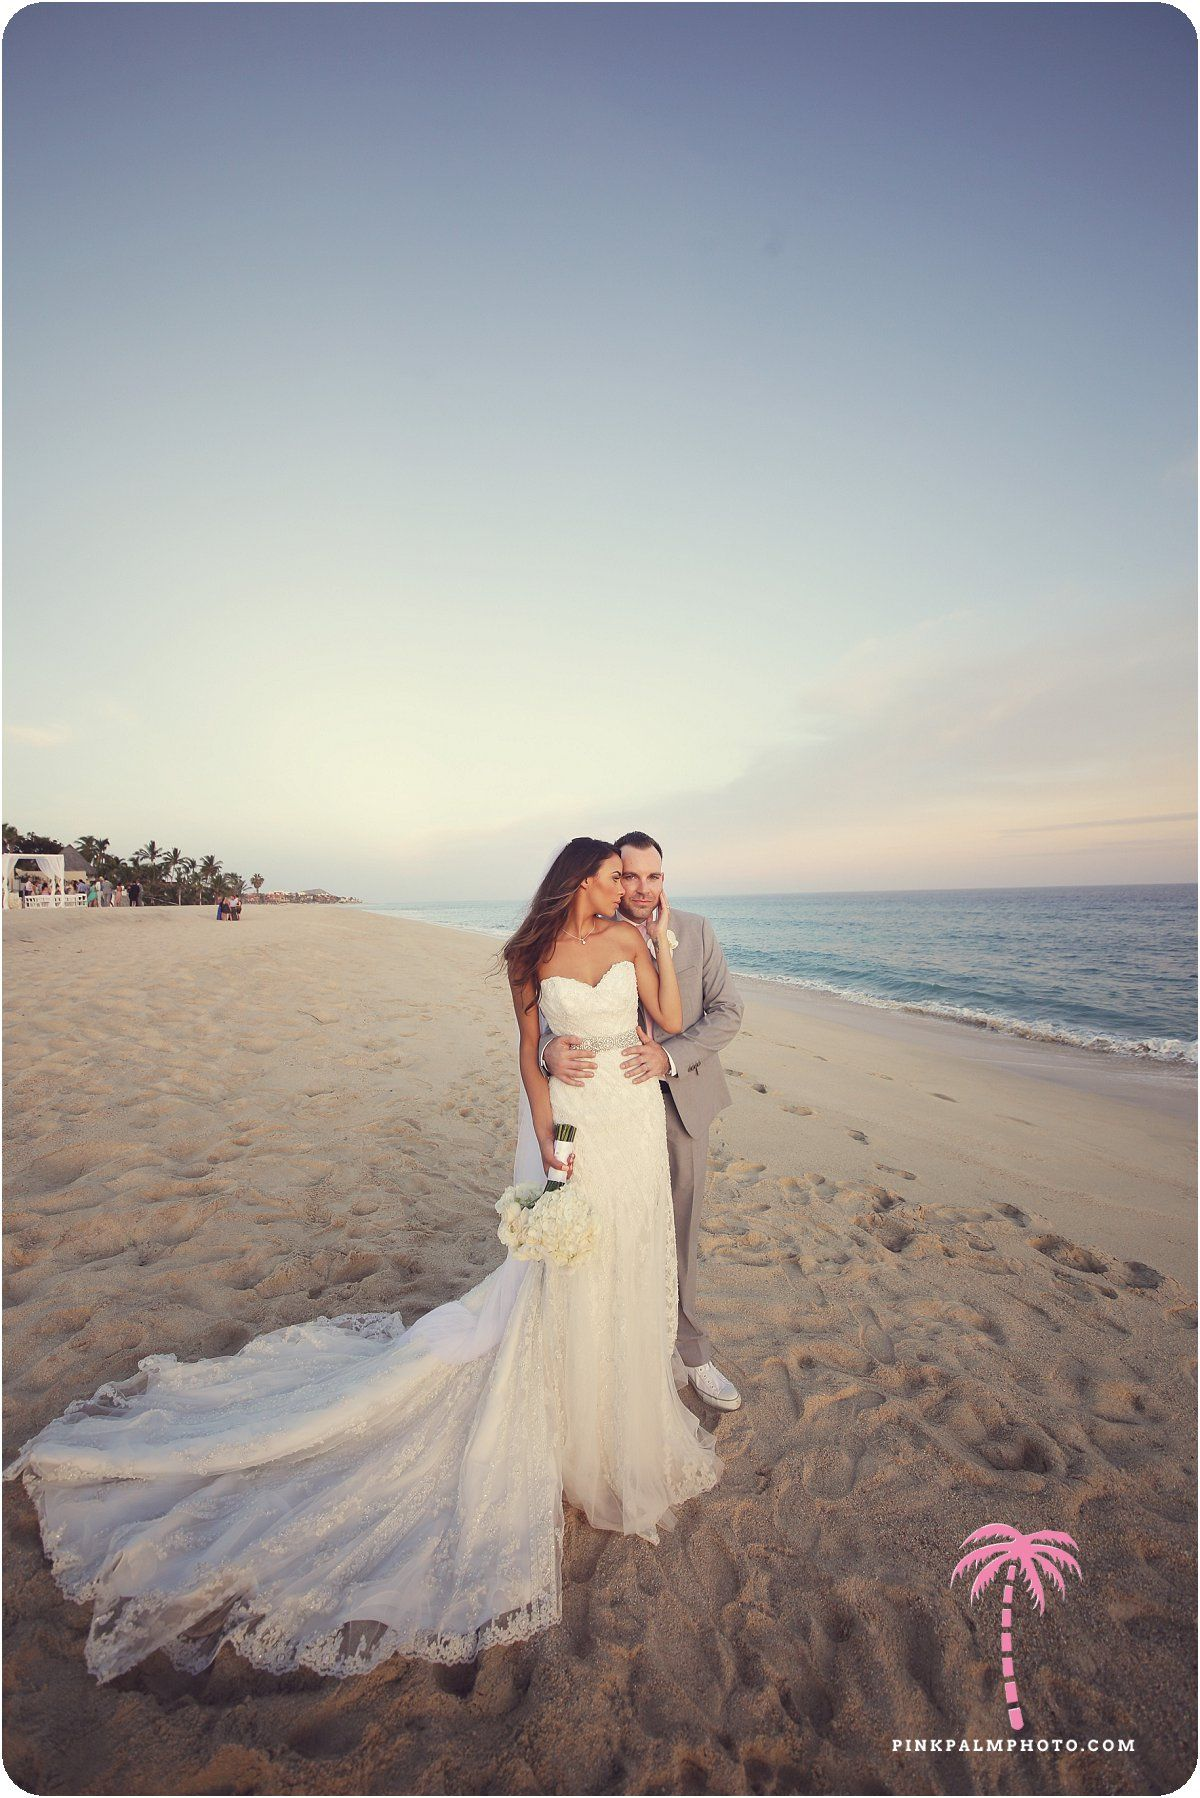 Bride and groom at beachfront Villa Serena, Cabo San Lucas. Wedding planner: Leslie Bost, One Happenings. #cabo #wedding #destinationwedding #wedspiration #white #whitewedding #beachfront #bridetobe #cabosanlucas